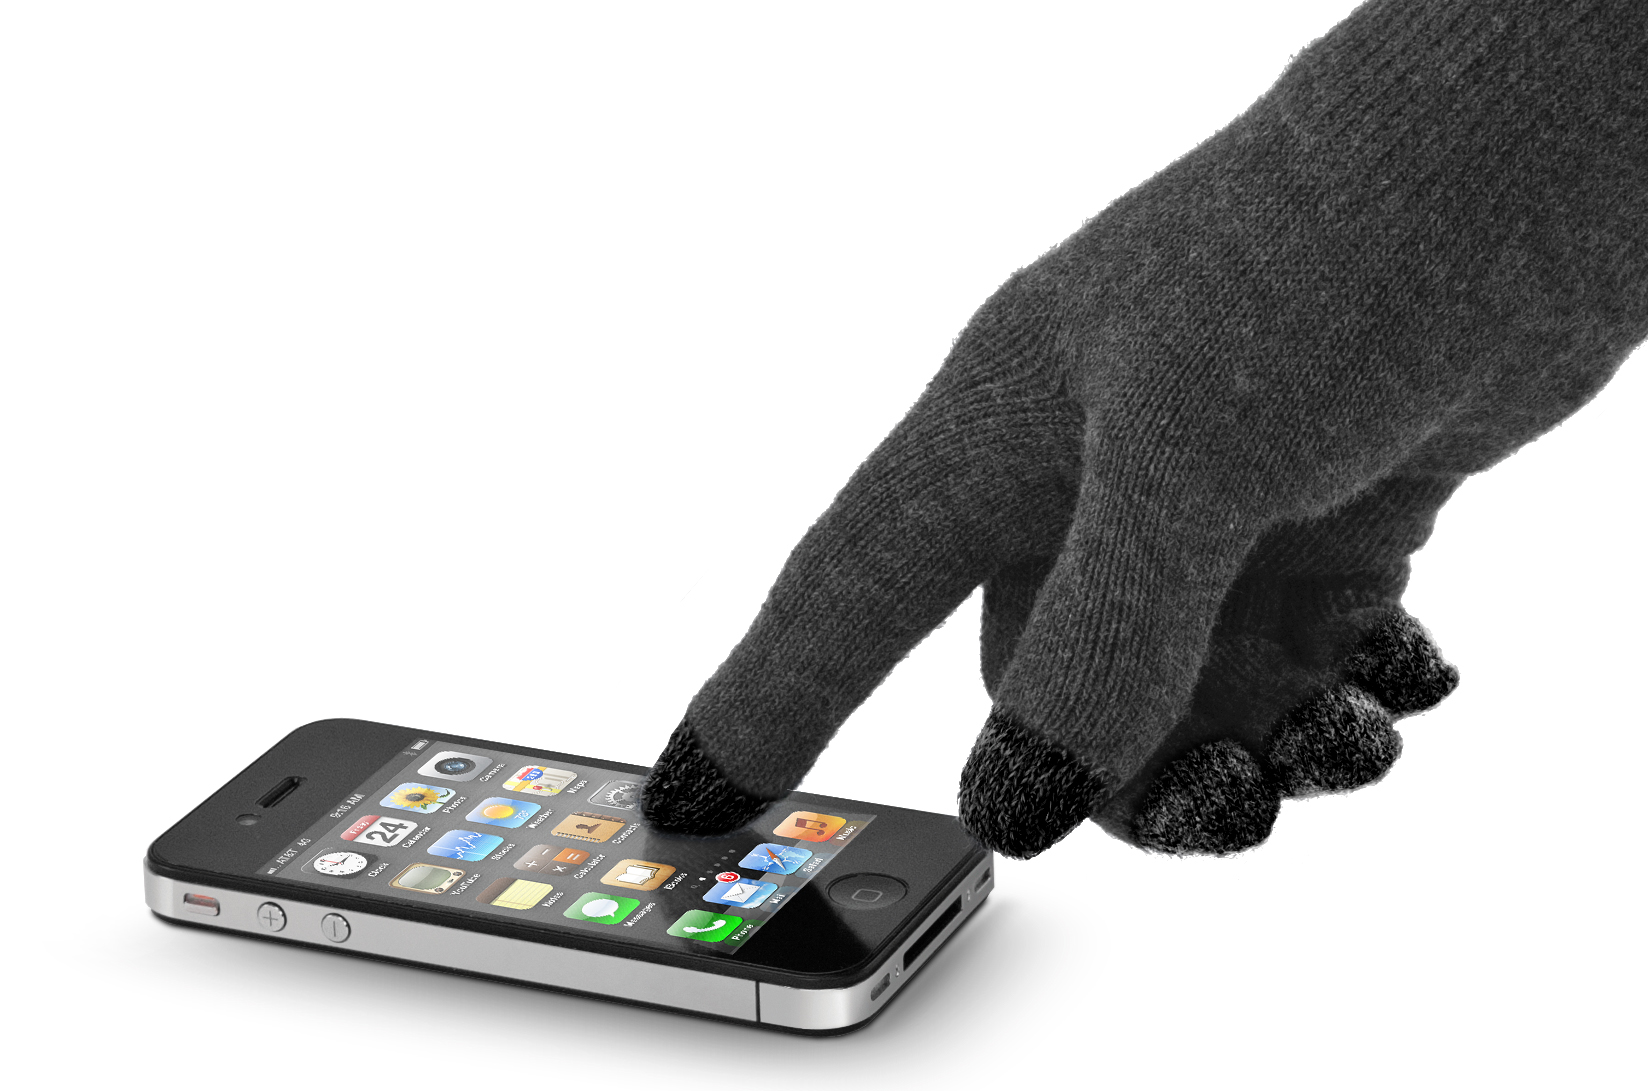 NewerTech NuTouch Gloves with iPhone